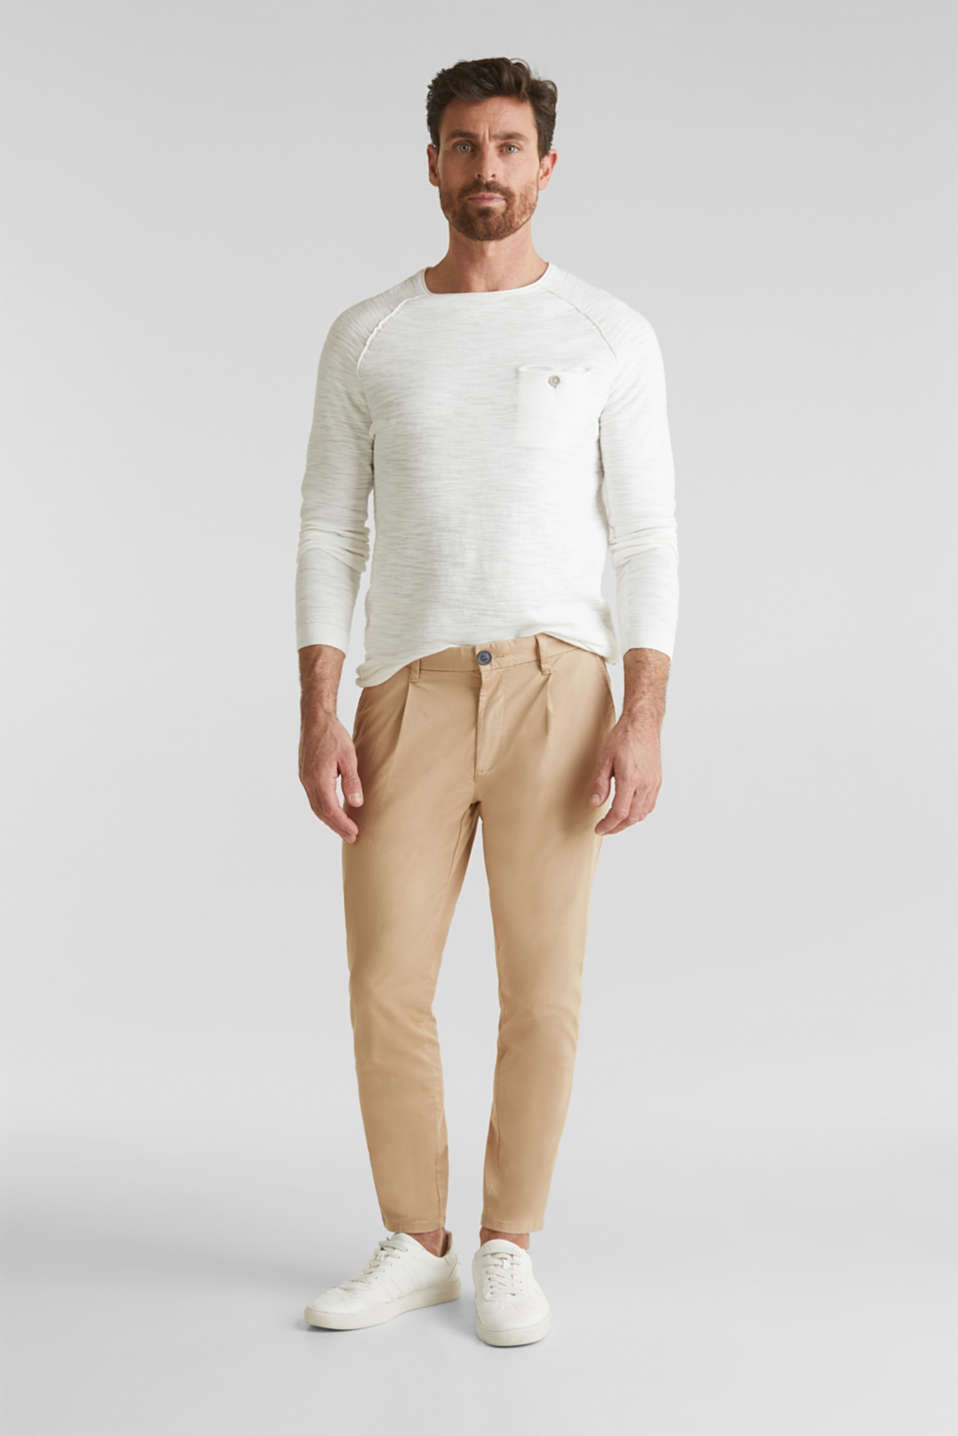 Jumper with a pocket, 100% cotton, OFF WHITE, detail image number 1